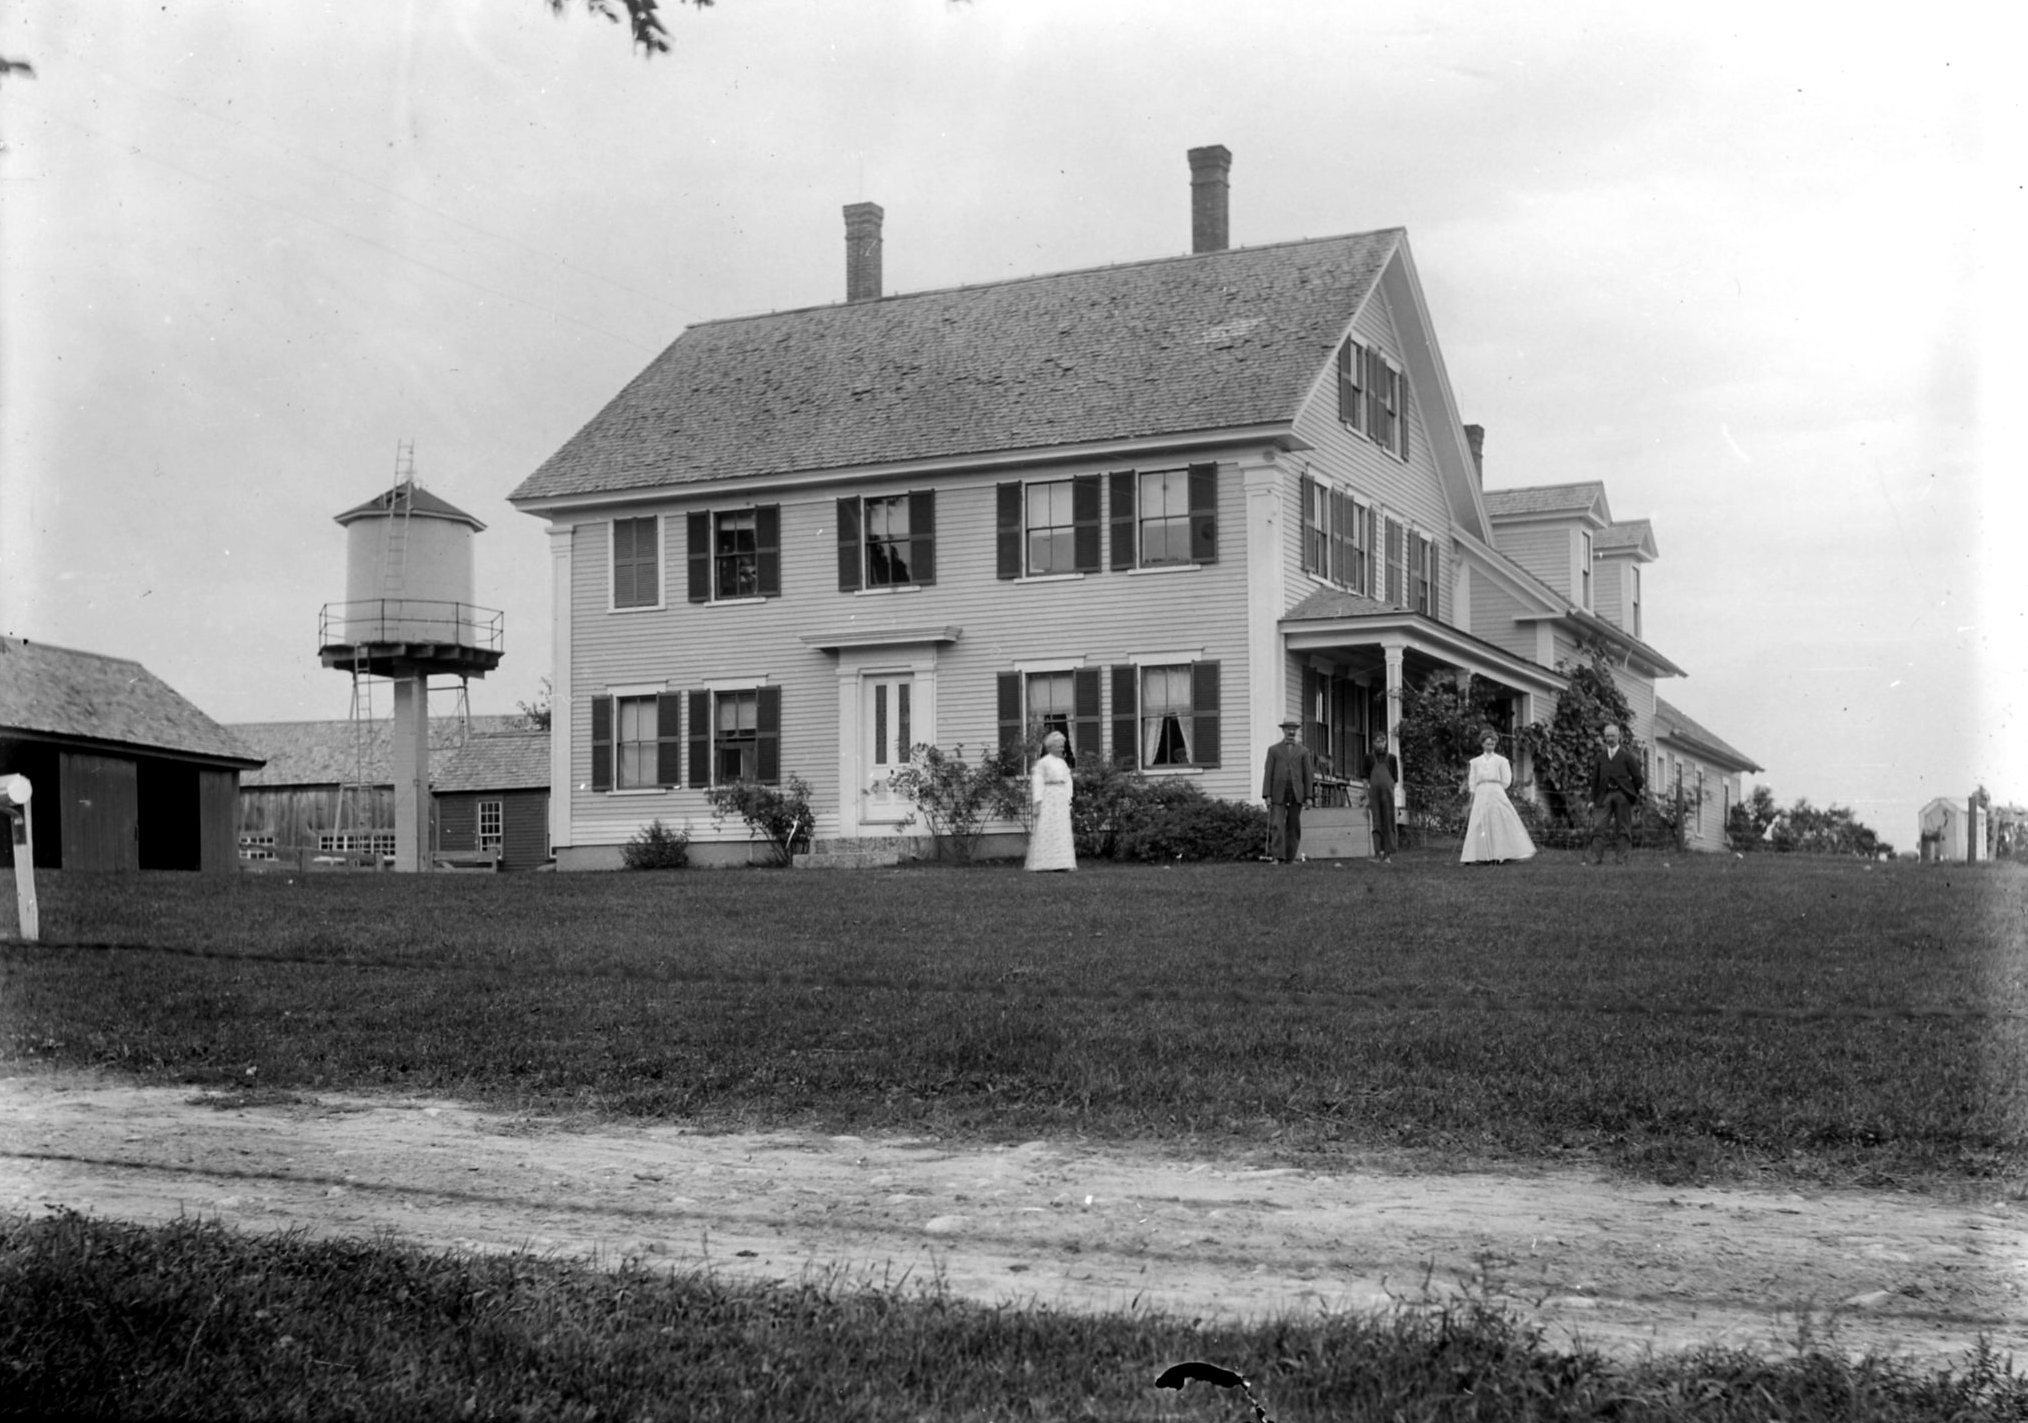 Photograph of Joseph Barnard's home, located at 1030 Briar Hill Rd.